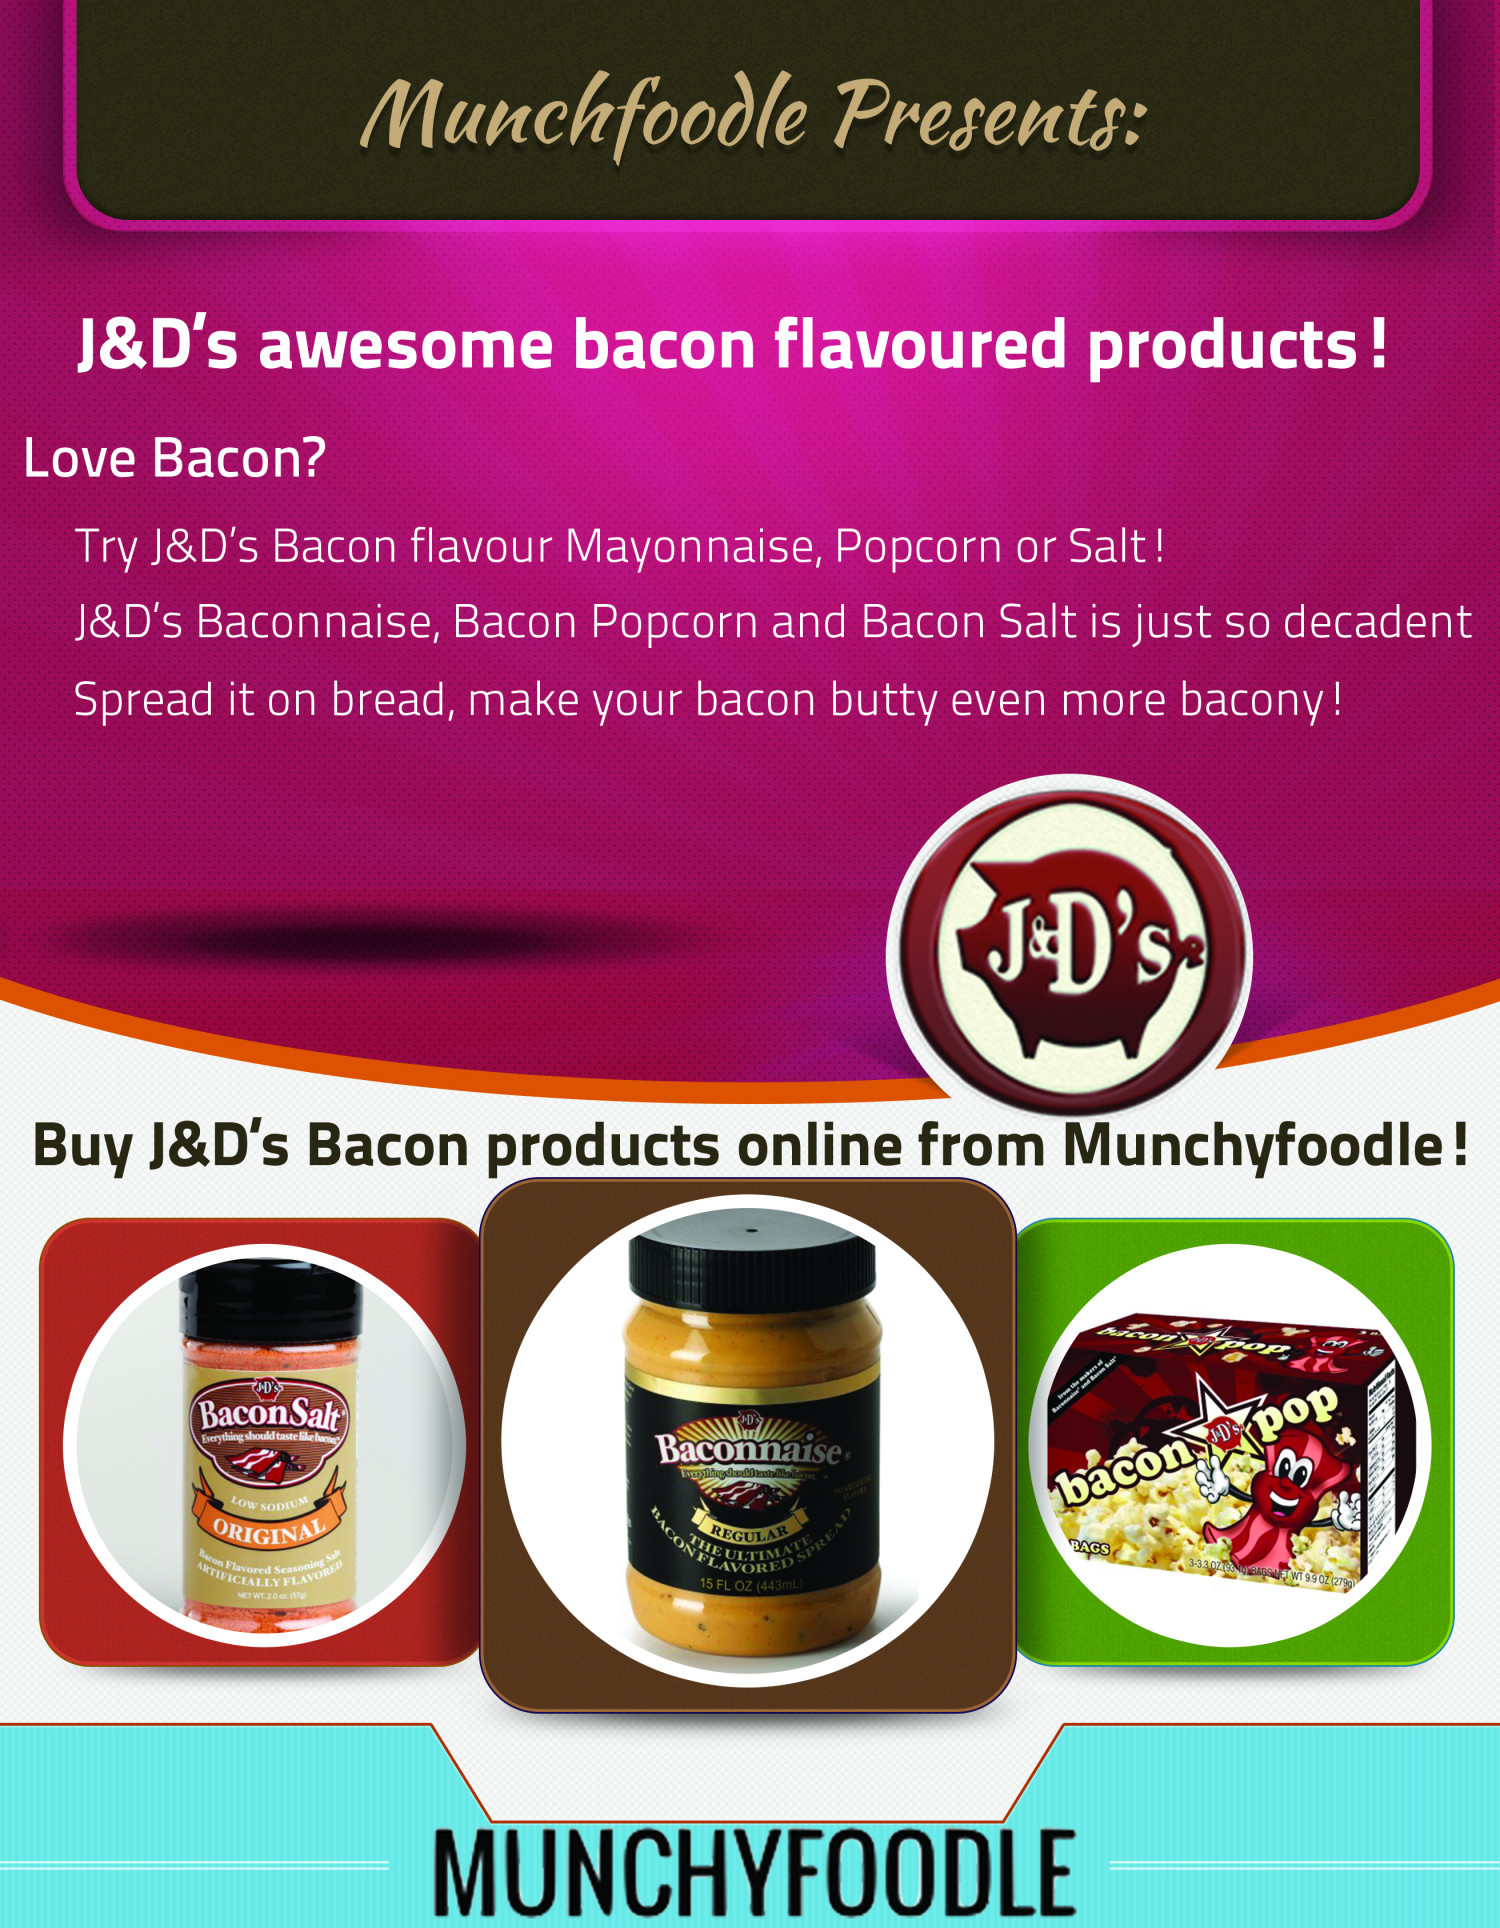 J&D's awesome bacon flavoured products Infographic